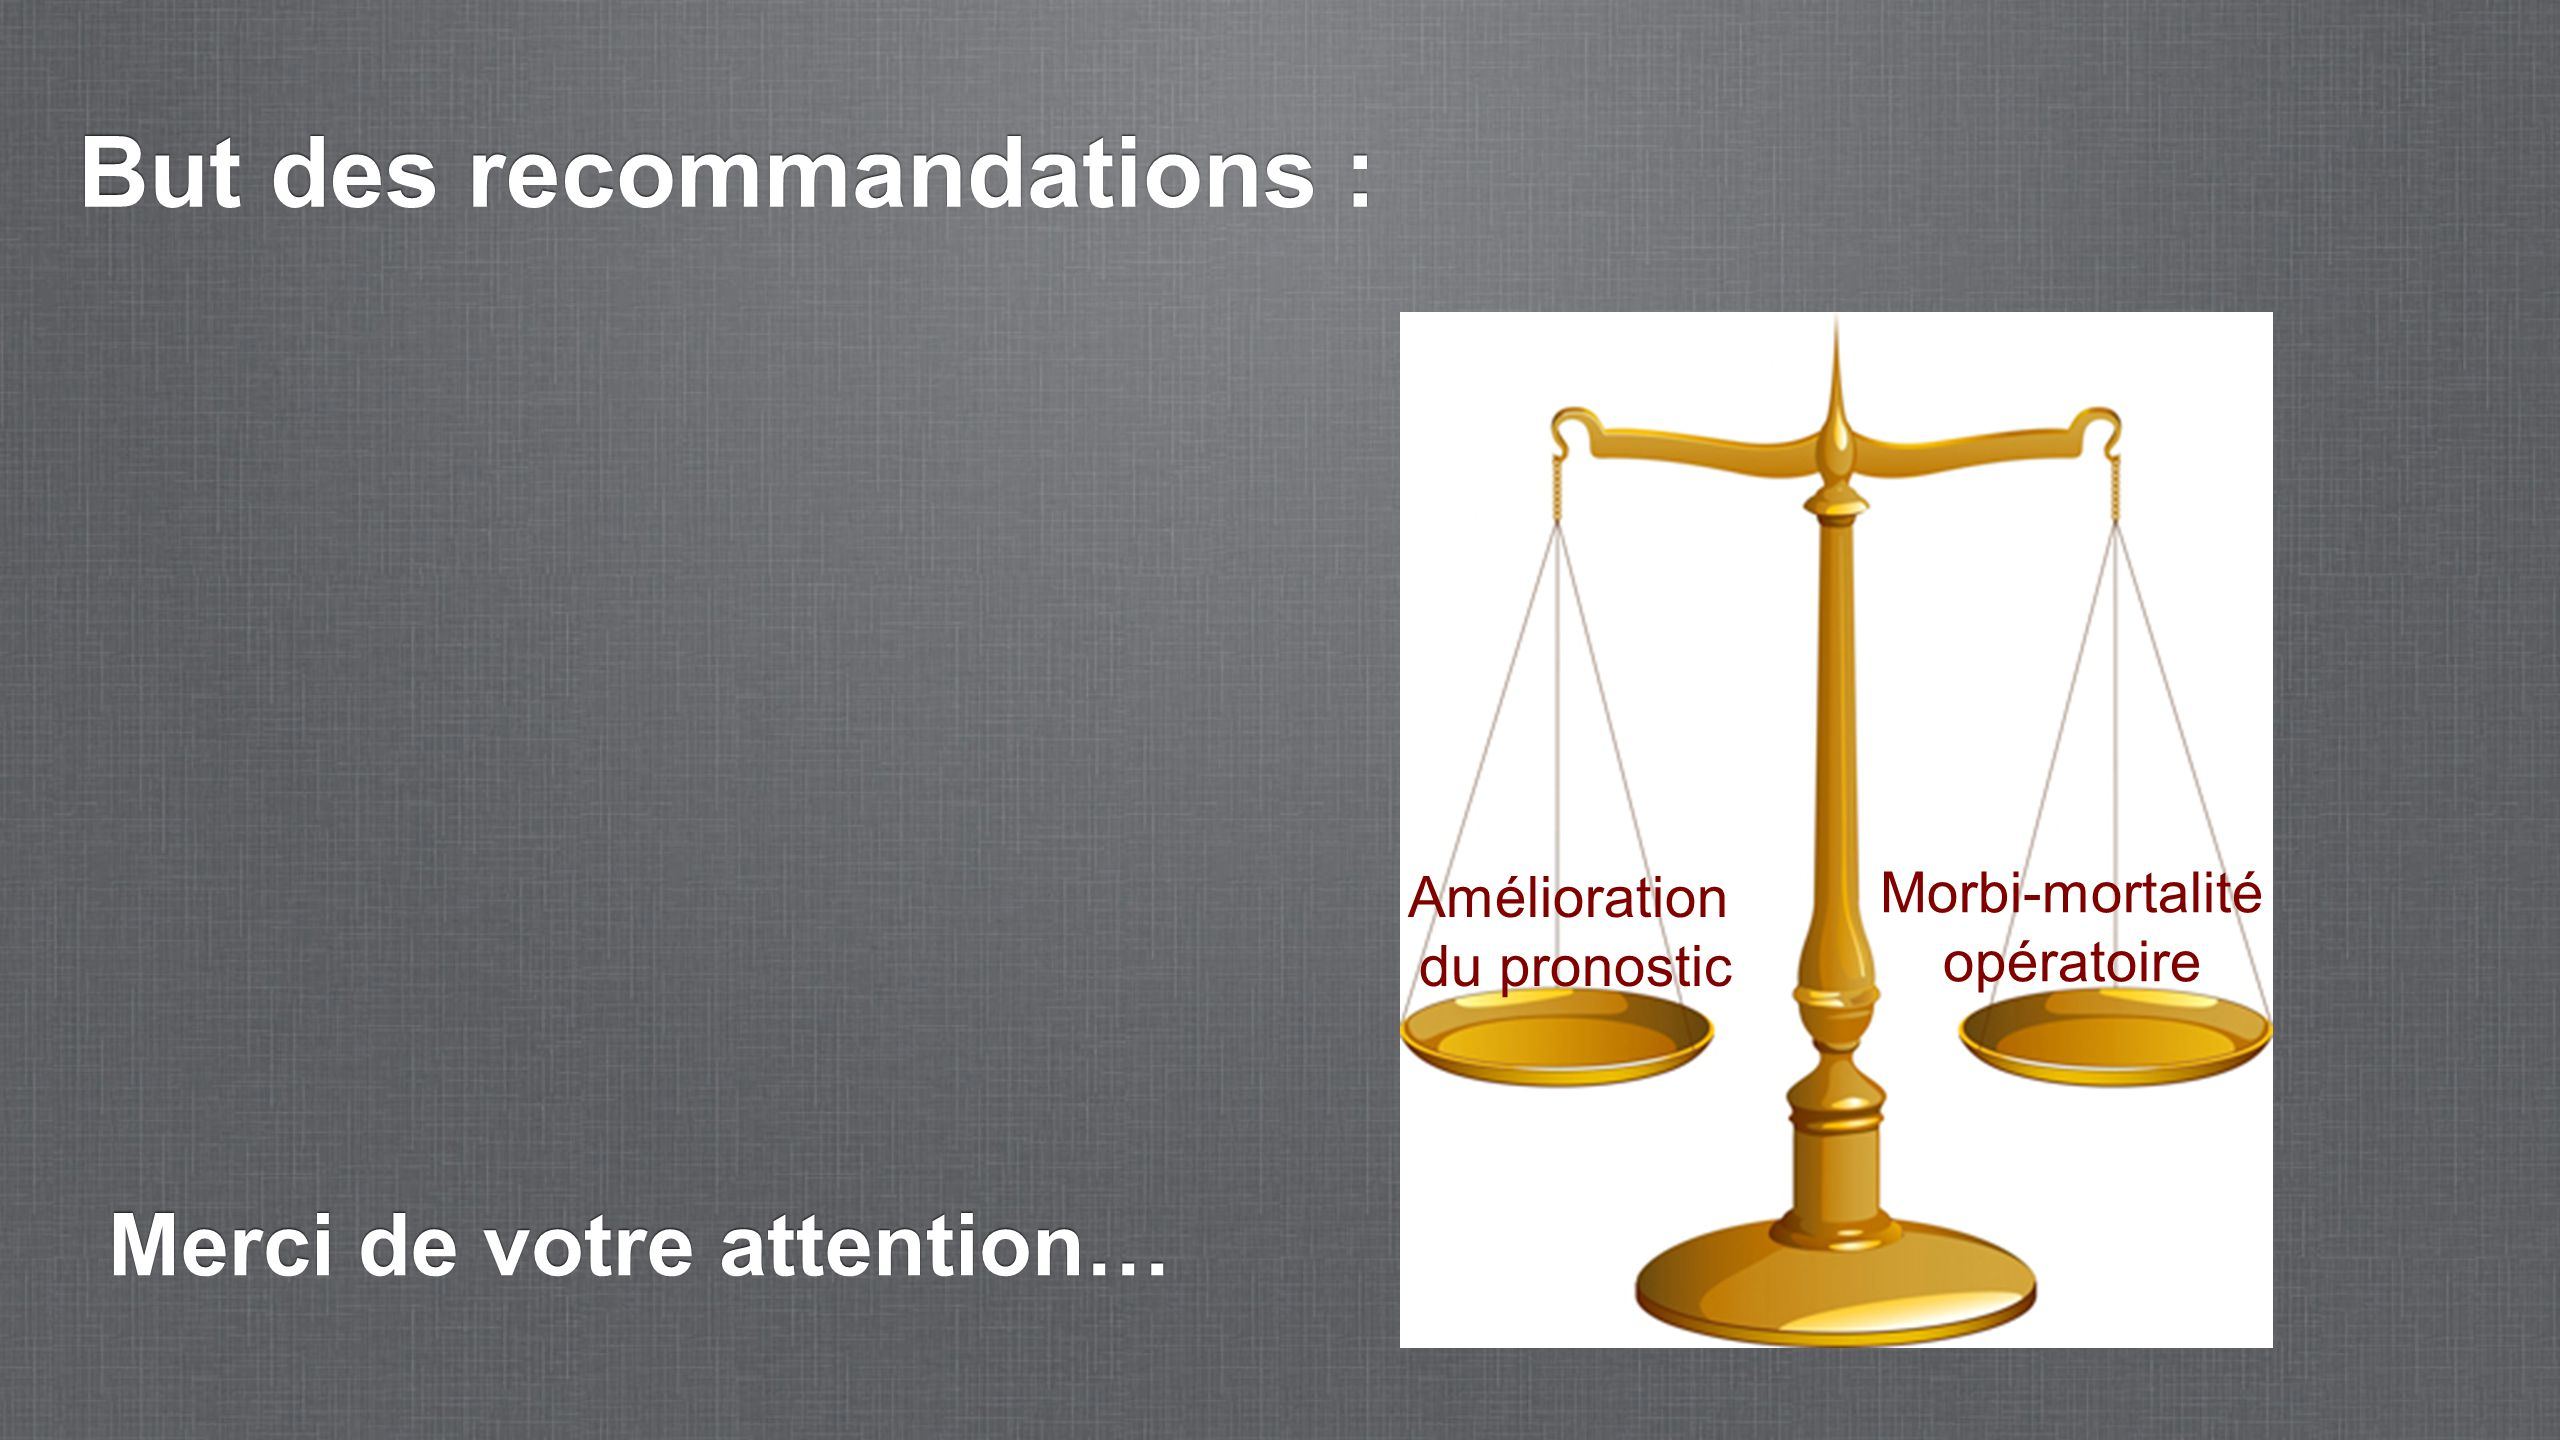 But des recommandations :